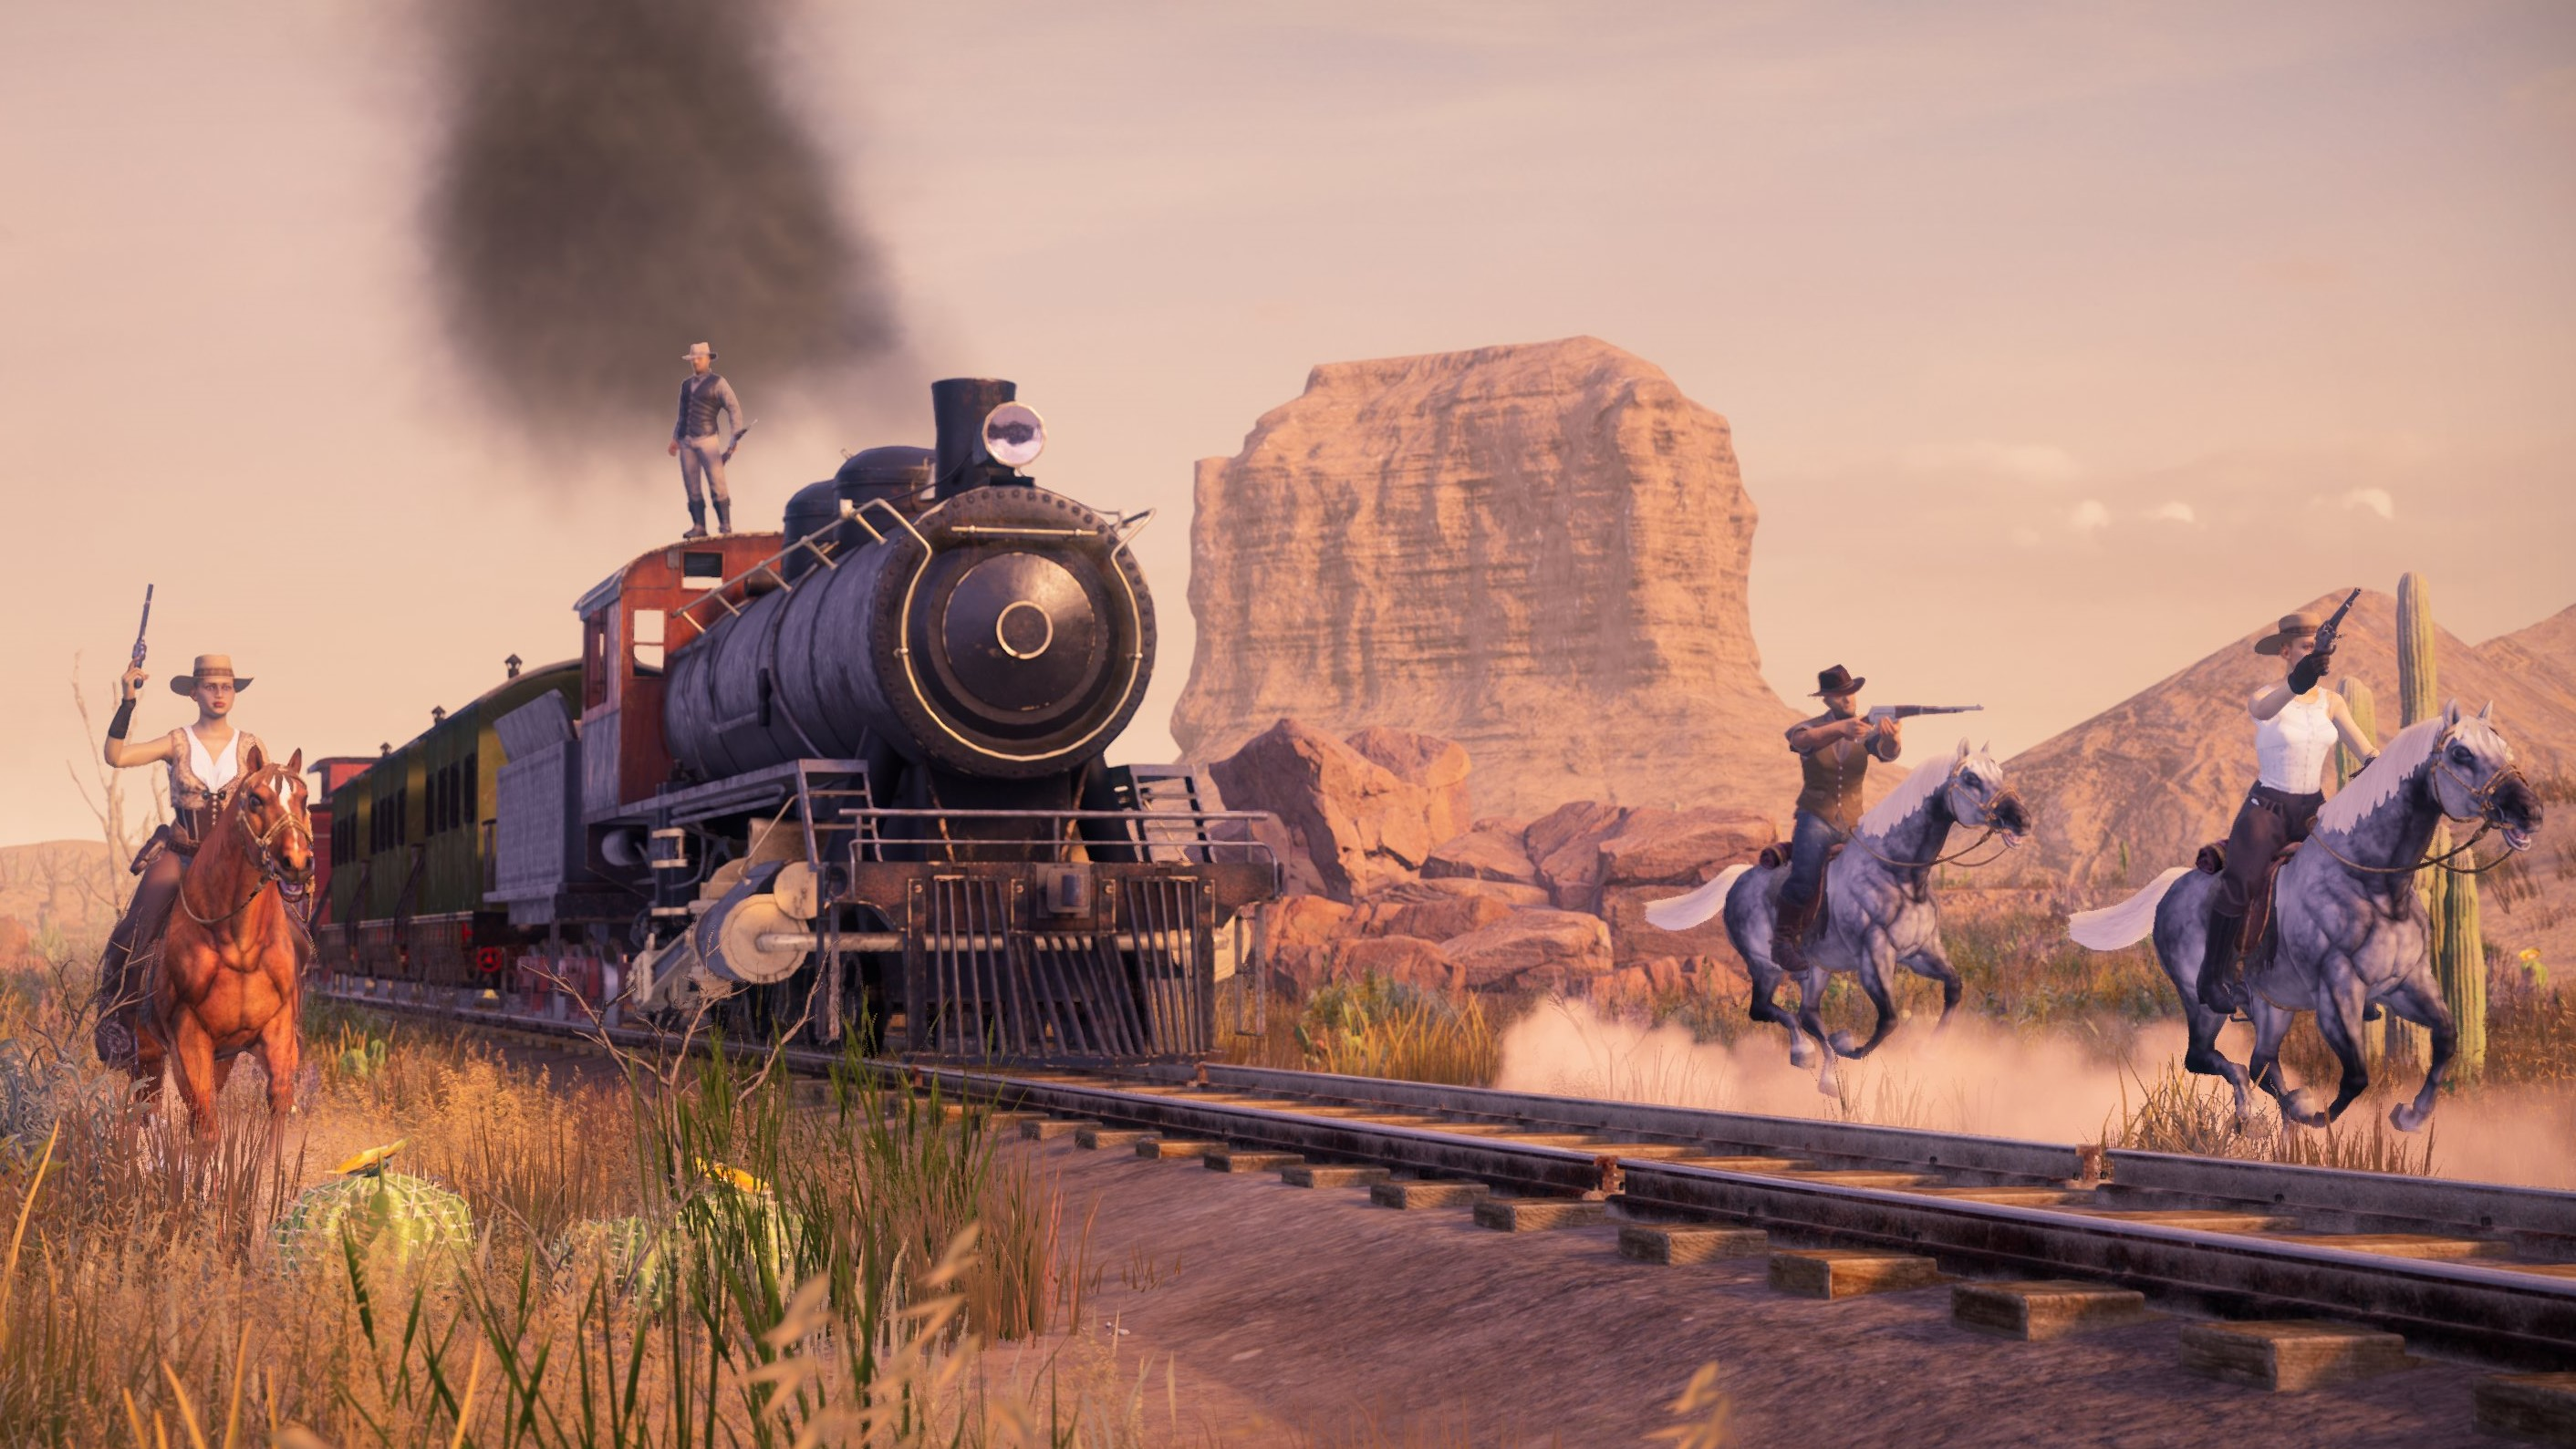 Cowboy battle royale Grit has horse combat, trains, and a clever take on loot